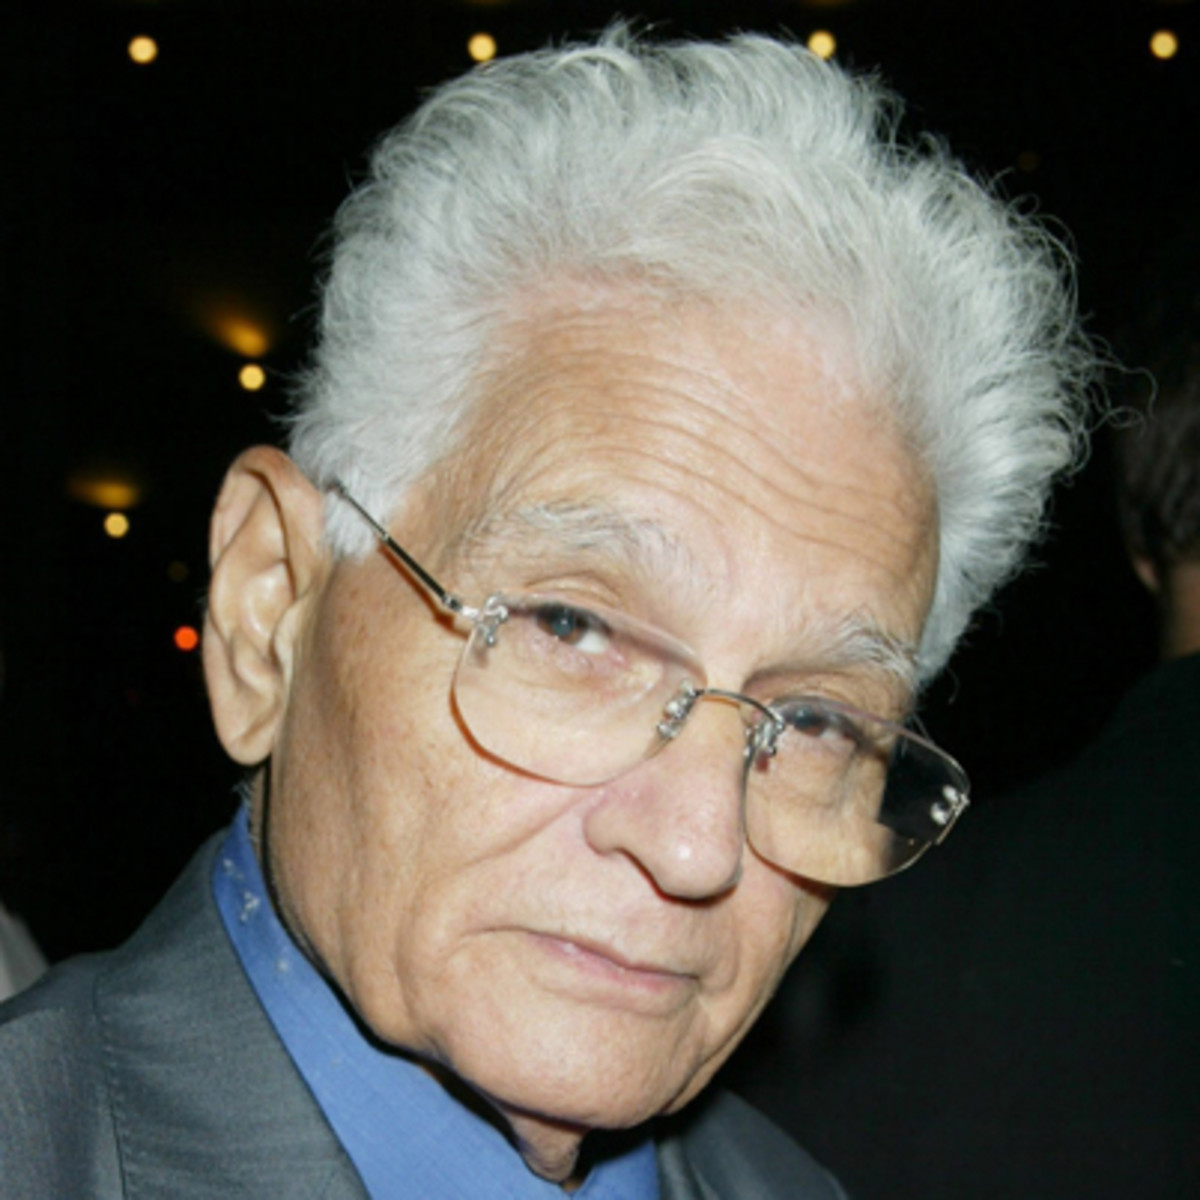 jacques derrida differance essay I'm not sure if i understood this essay derrida just loves to complicate everything actually, i learned more about differance from other books rather than his own book.